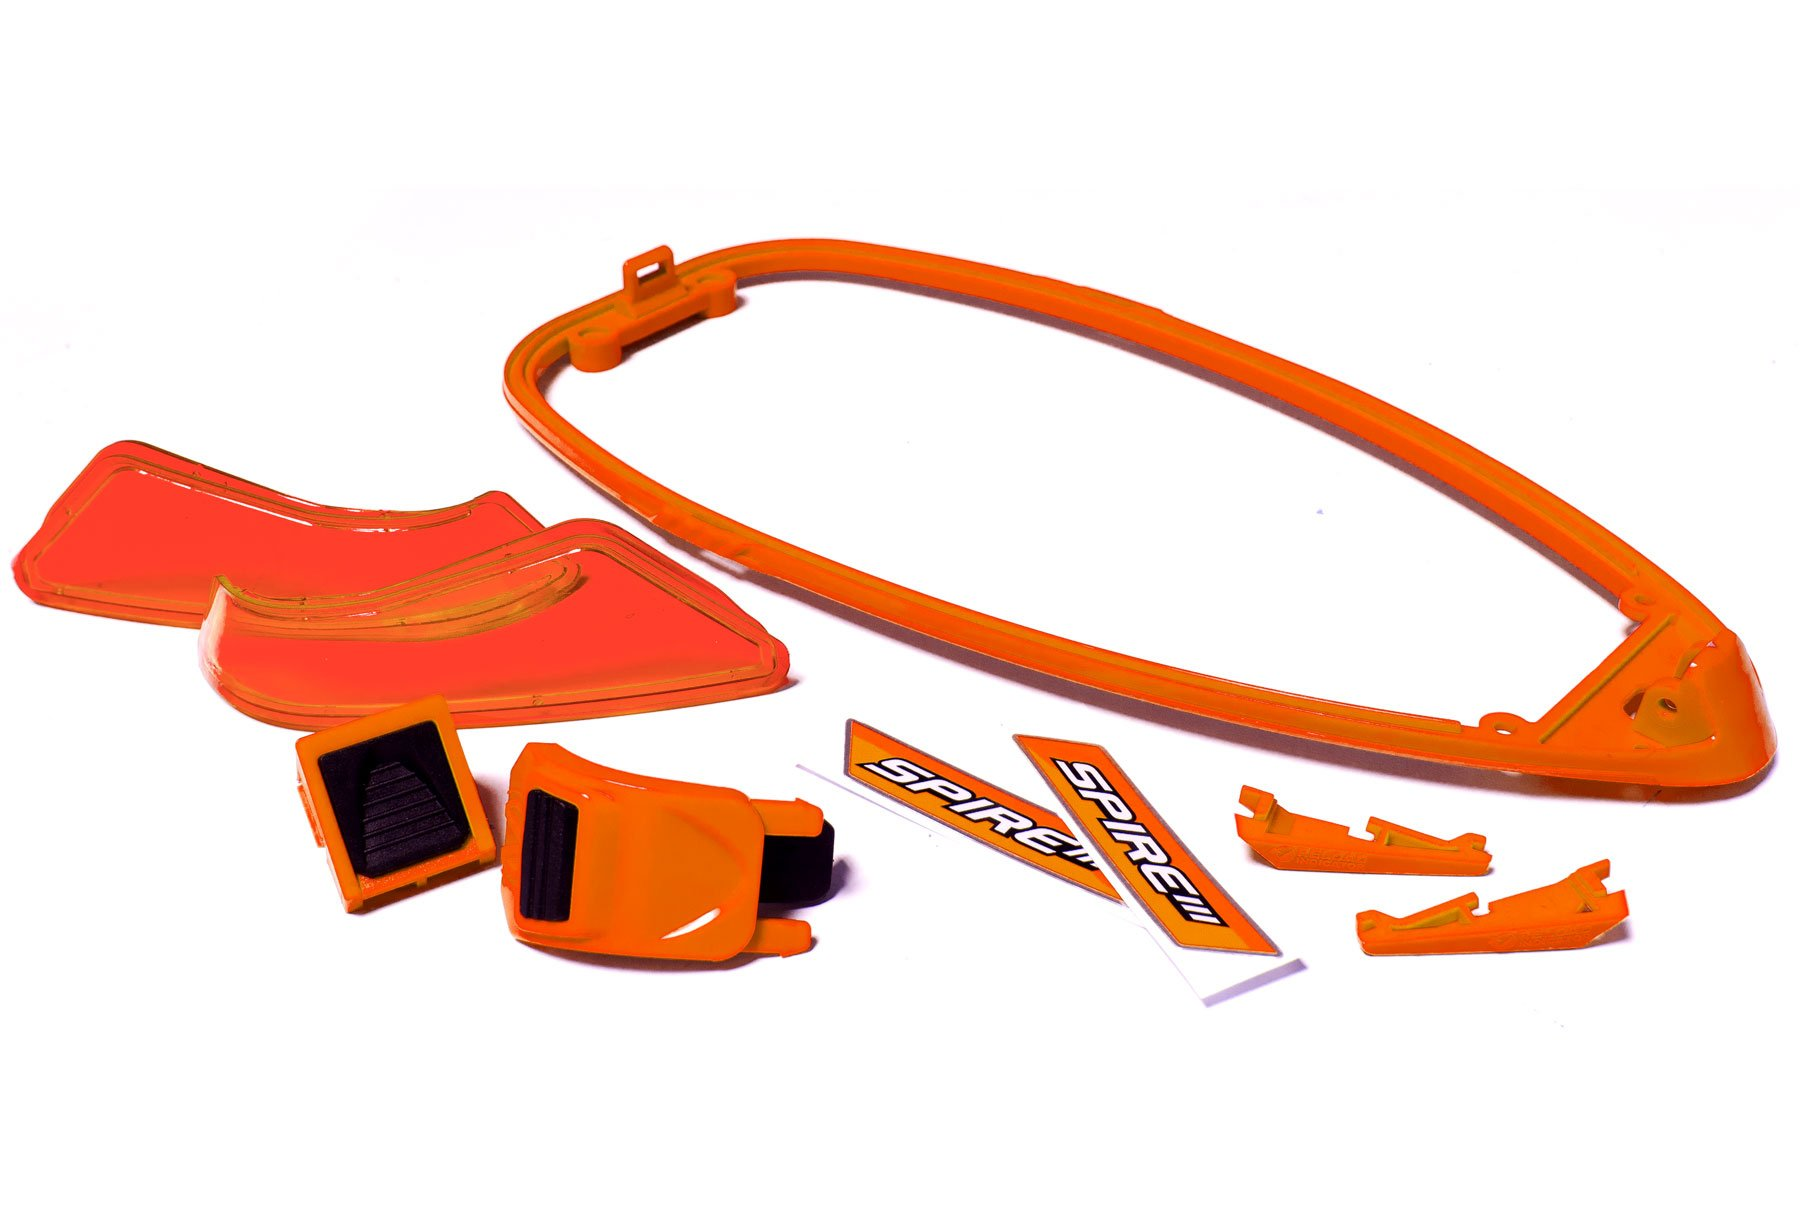 Virtue Paintball Spire III Loader Color Kit (Orange) by Virtue Paintball